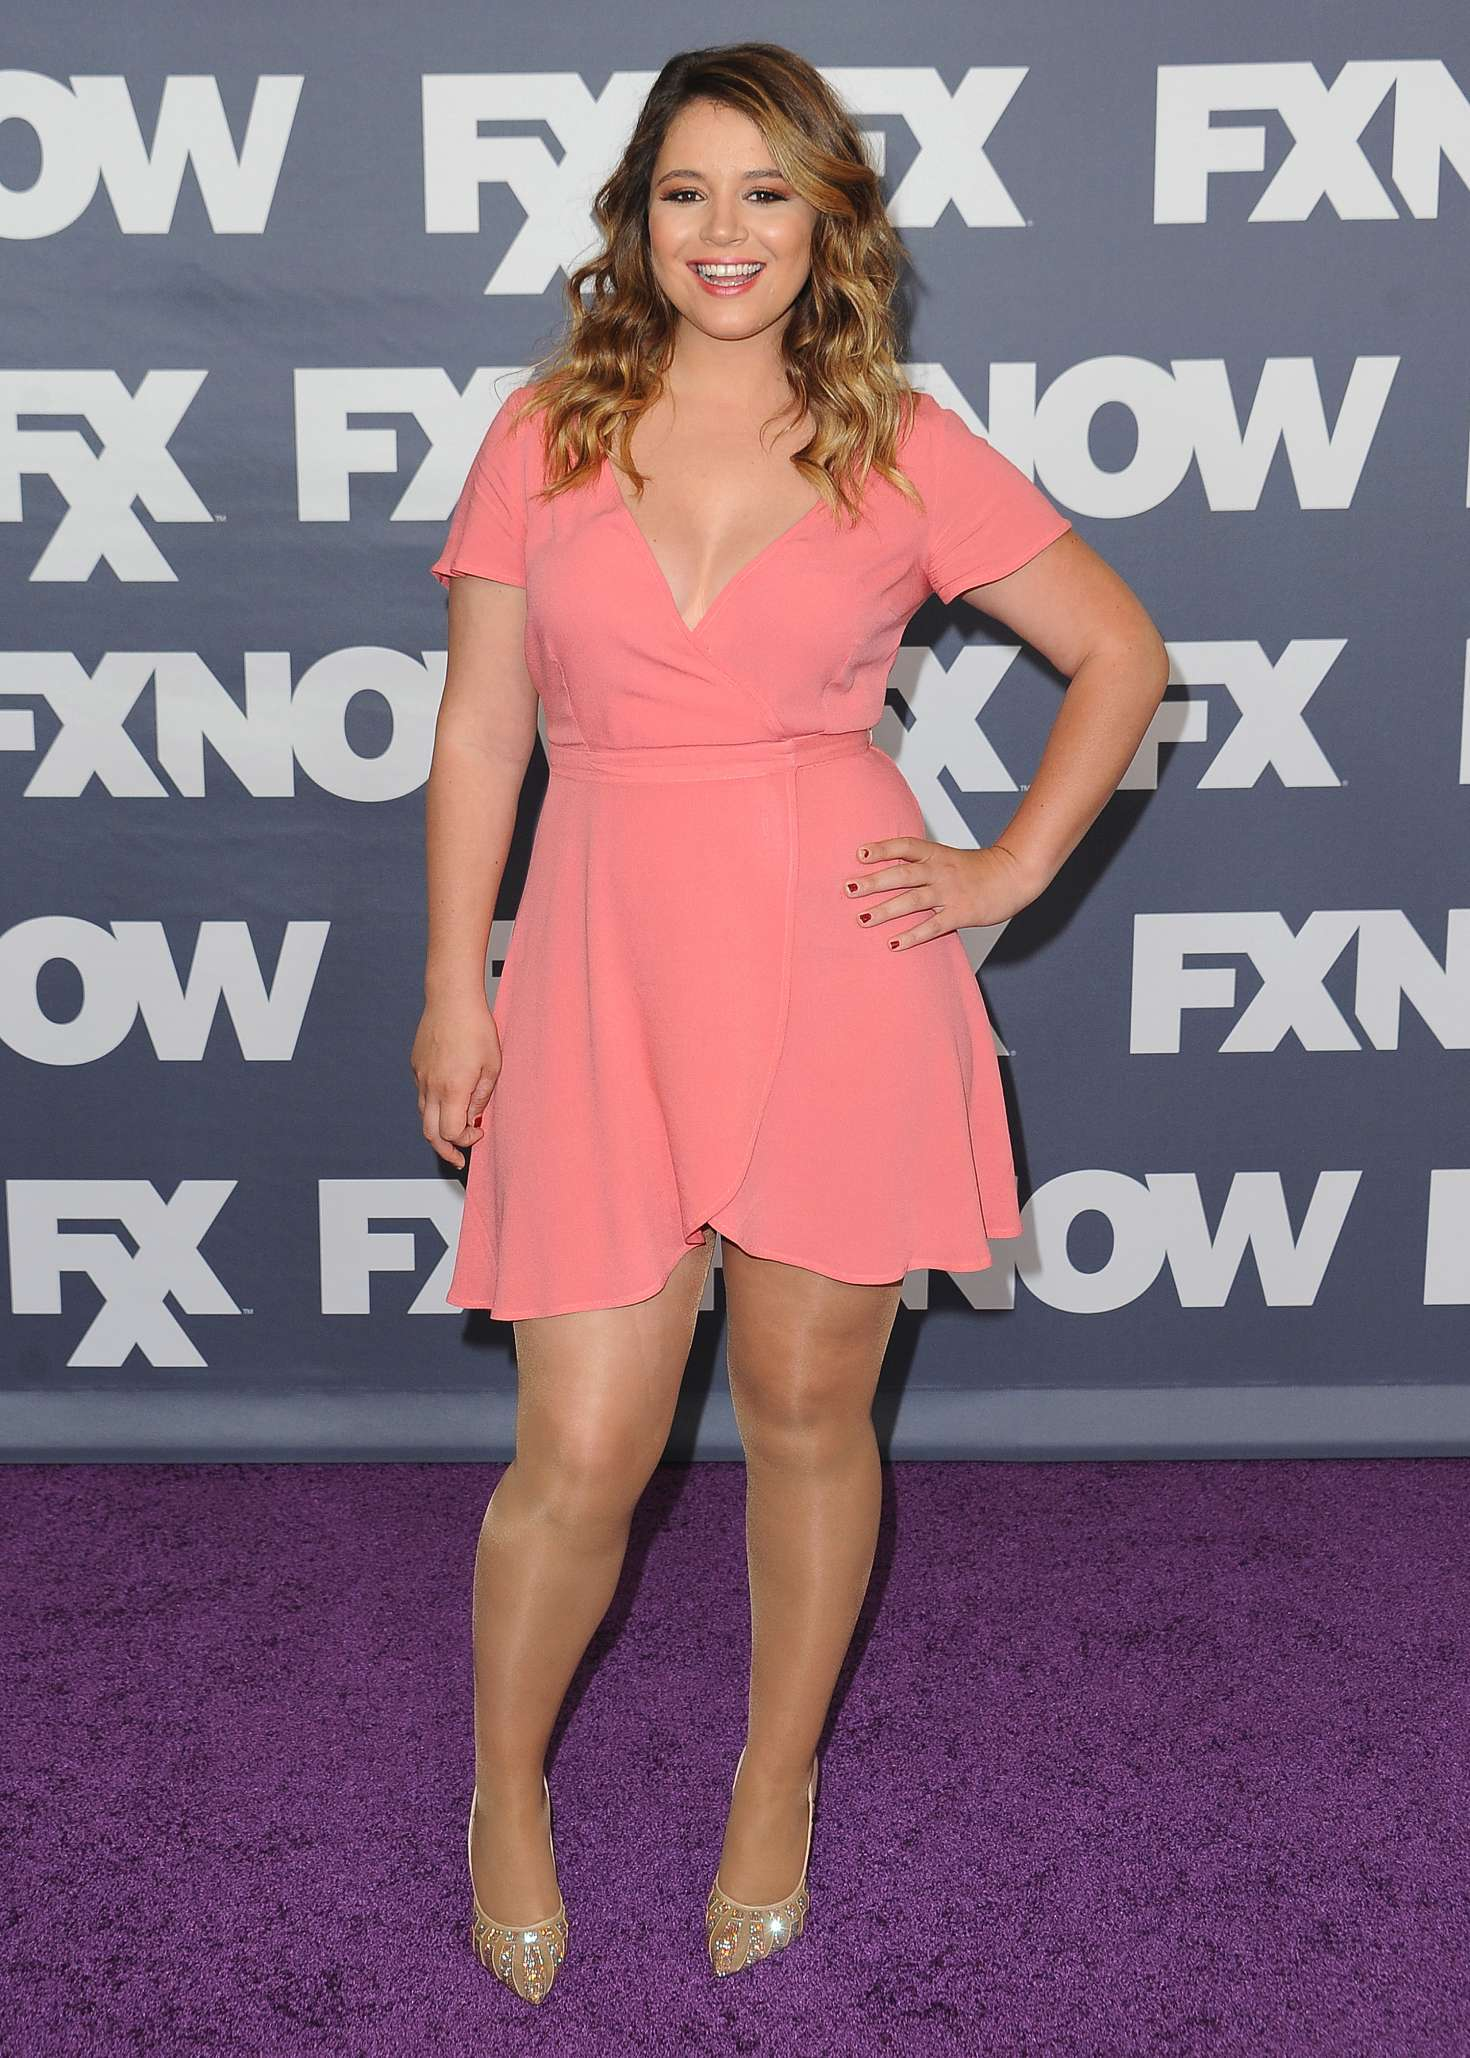 kether donohue this woman work